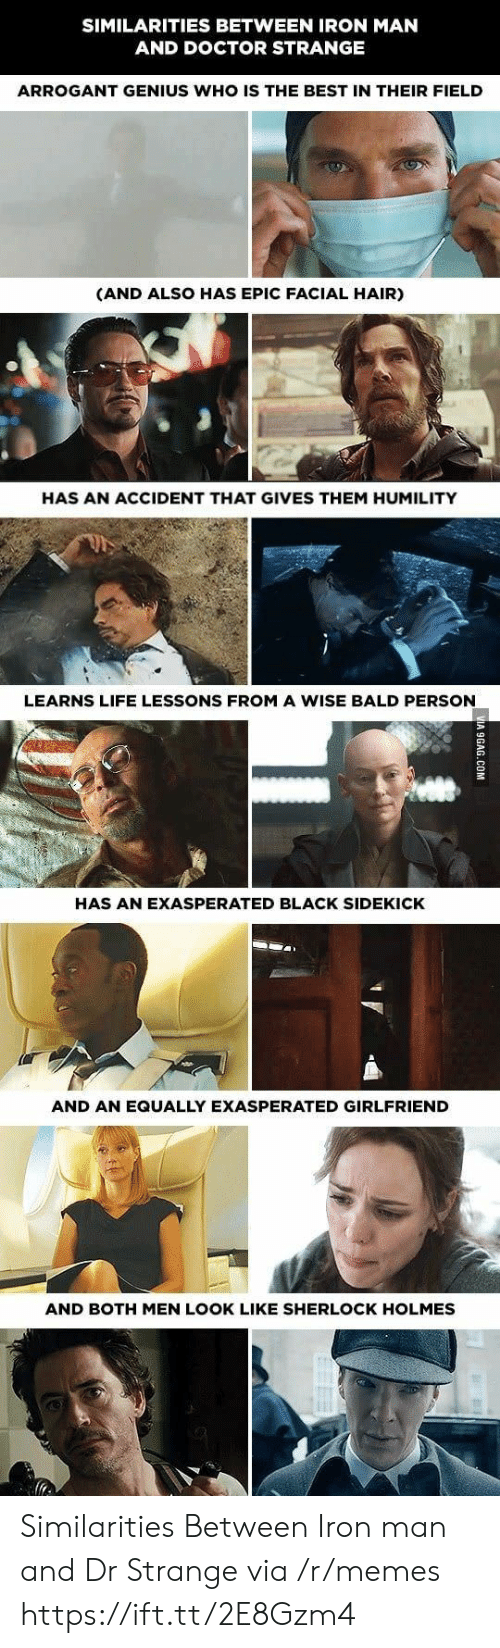 Doctor, Iron Man, and Life: SIMILARITIES BETWEEN IRON MAN  AND DOCTOR STRANGE  ARROGANT GENIUS WHO IS THE BEST IN THEIR FIELD  (AND ALSO HAS EPIC FACIAL HAIR)  HAS AN ACCIDENT THAT GIVES THEM HUMILITY  LEARNS LIFE LESSONS FROM A WISE BALD PERSON  HAS AN EXASPERATED BLACK SIDEKICK  AND AN EQUALLY EXASPERATED GIRLFRIEND  AND BOTH MEN LOOK LIKE SHERLOCK HOLMES Similarities Between Iron man and Dr Strange via /r/memes https://ift.tt/2E8Gzm4